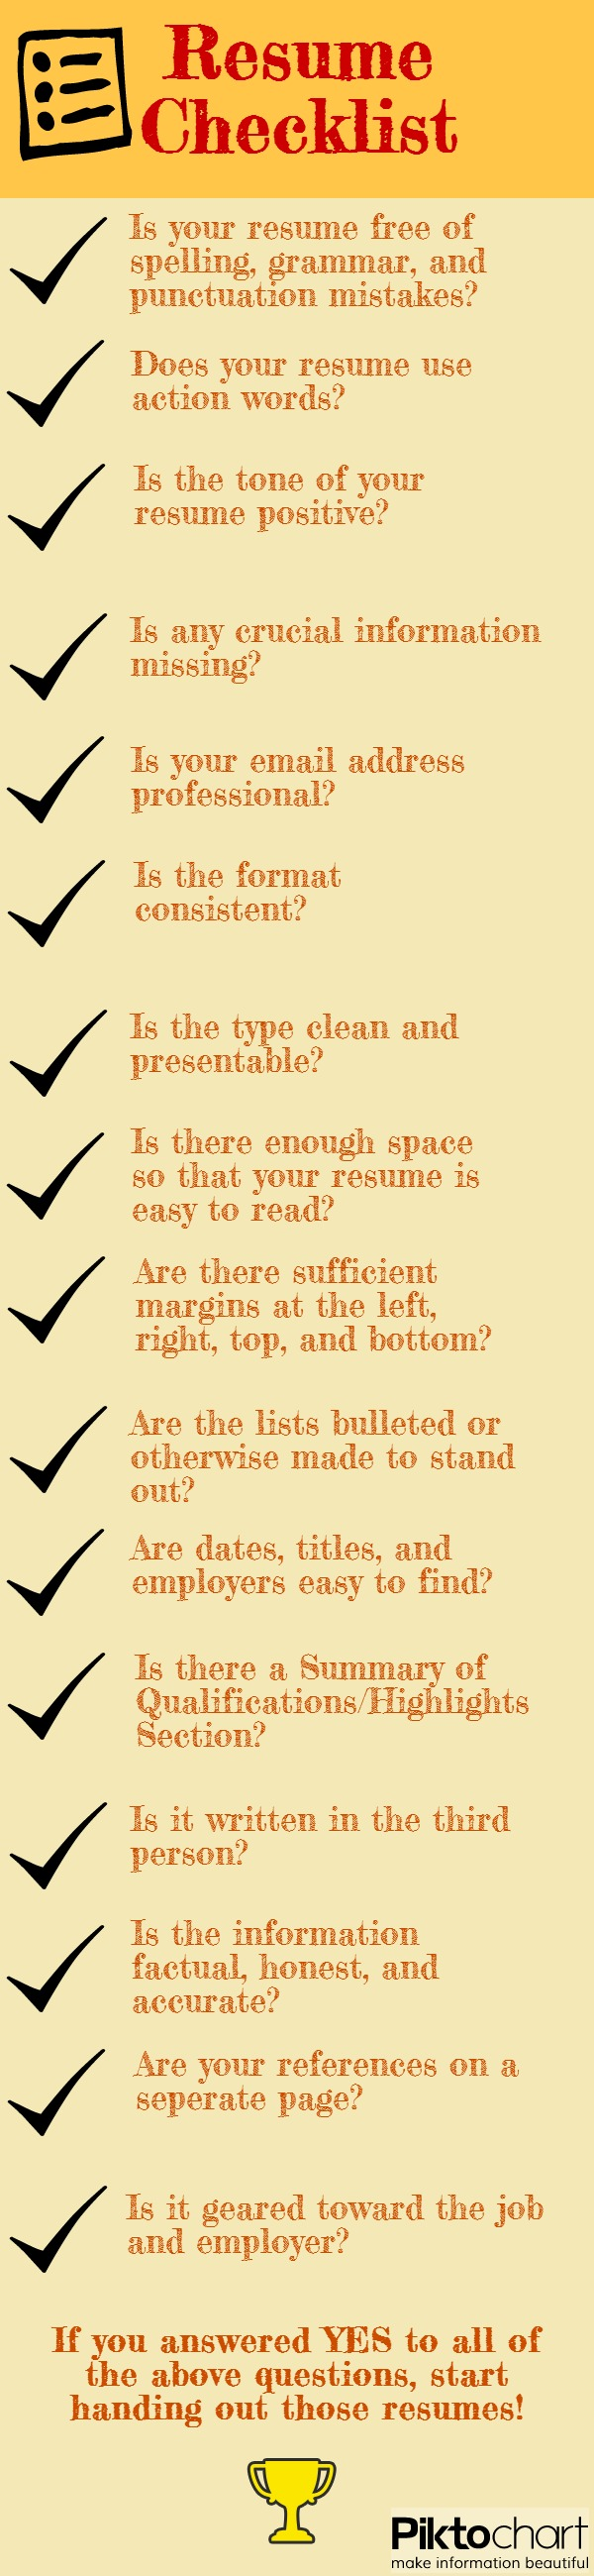 make sure you read this list before handing out your resumes